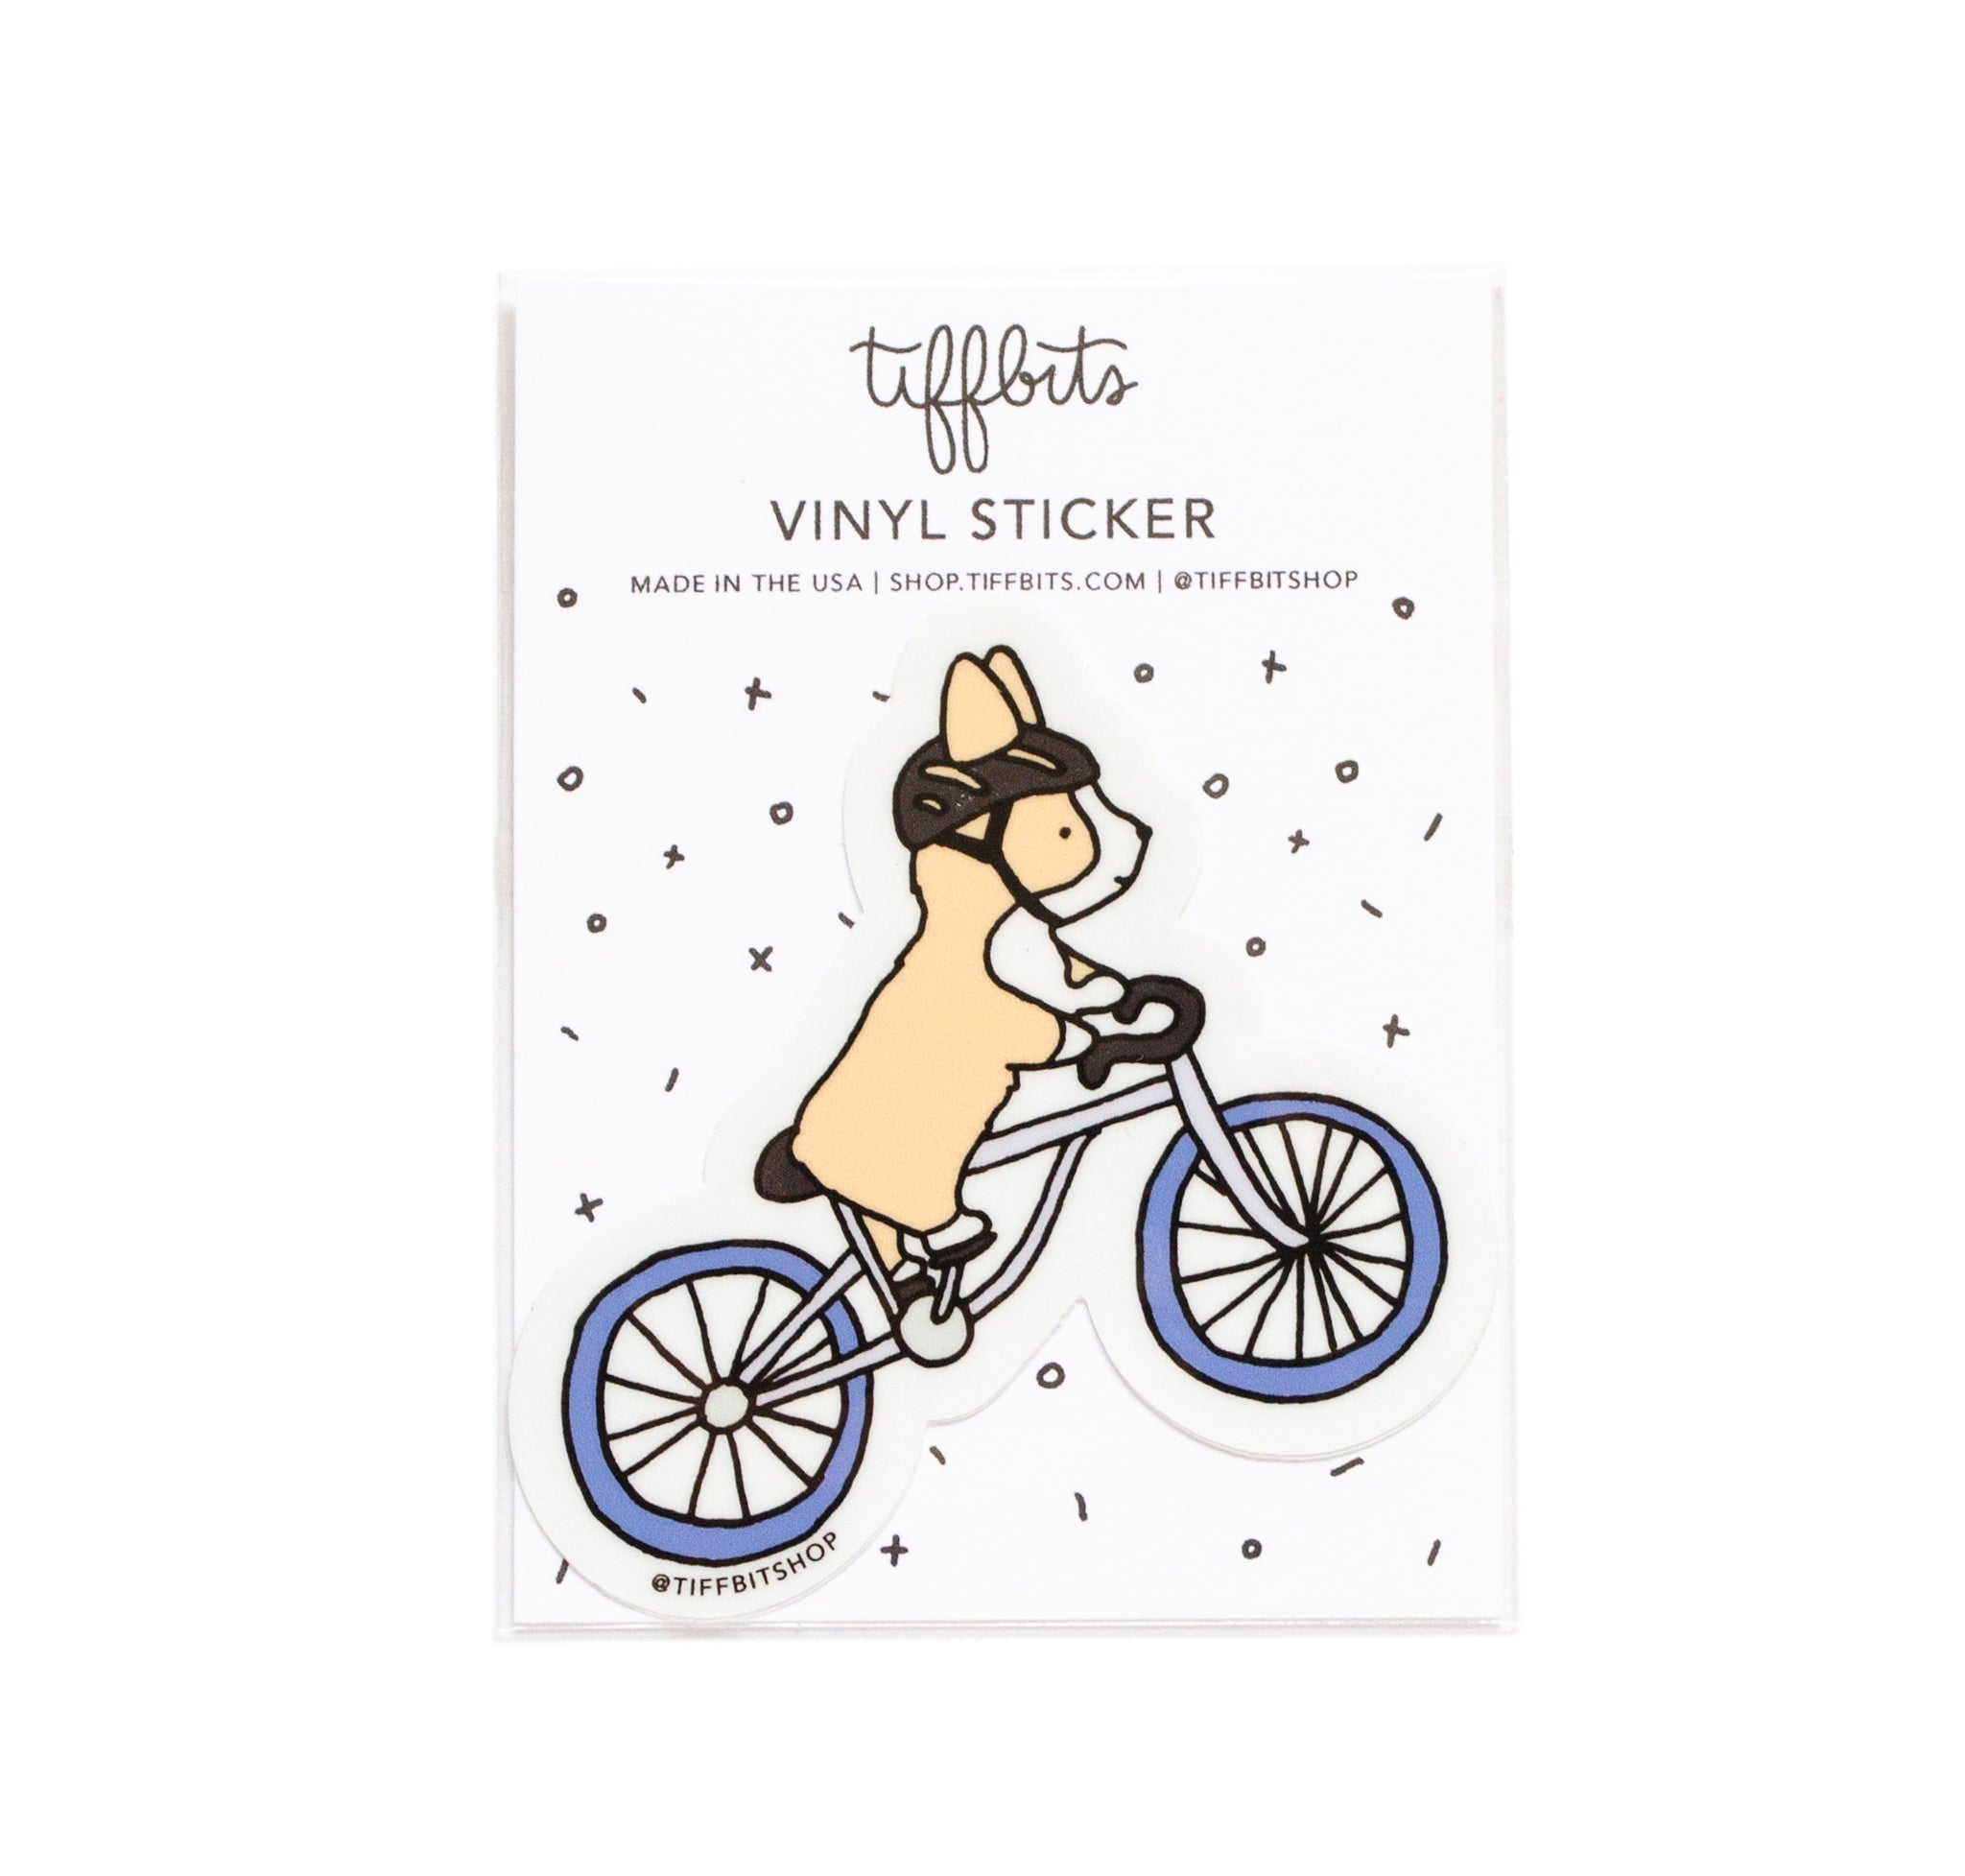 corgi riding bicycle sticker in packaging